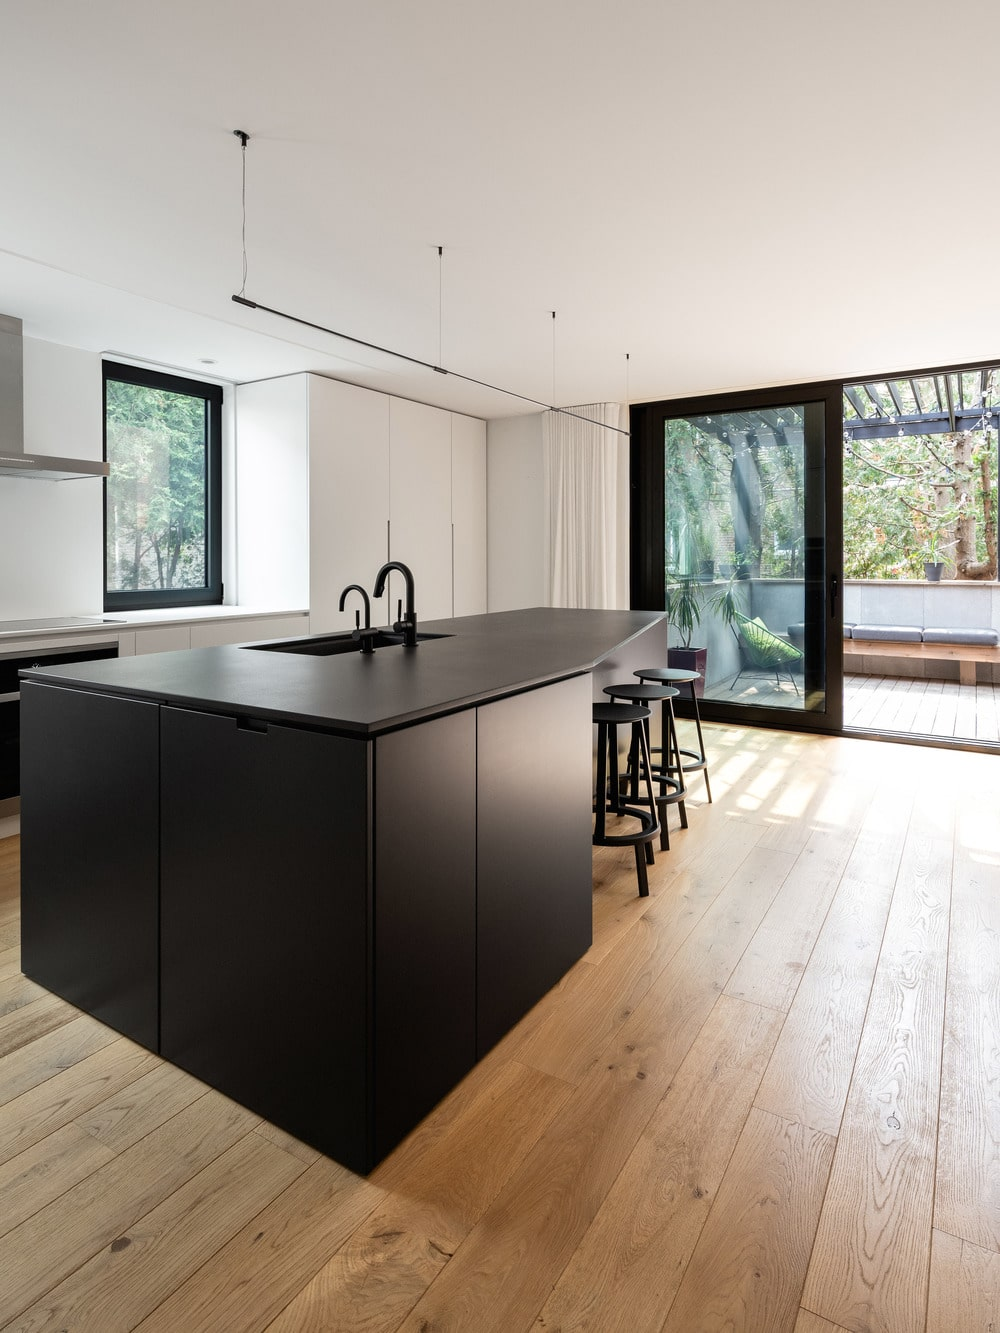 The kitchen has a large black kitchen island that stands out against the hardwood flooring.